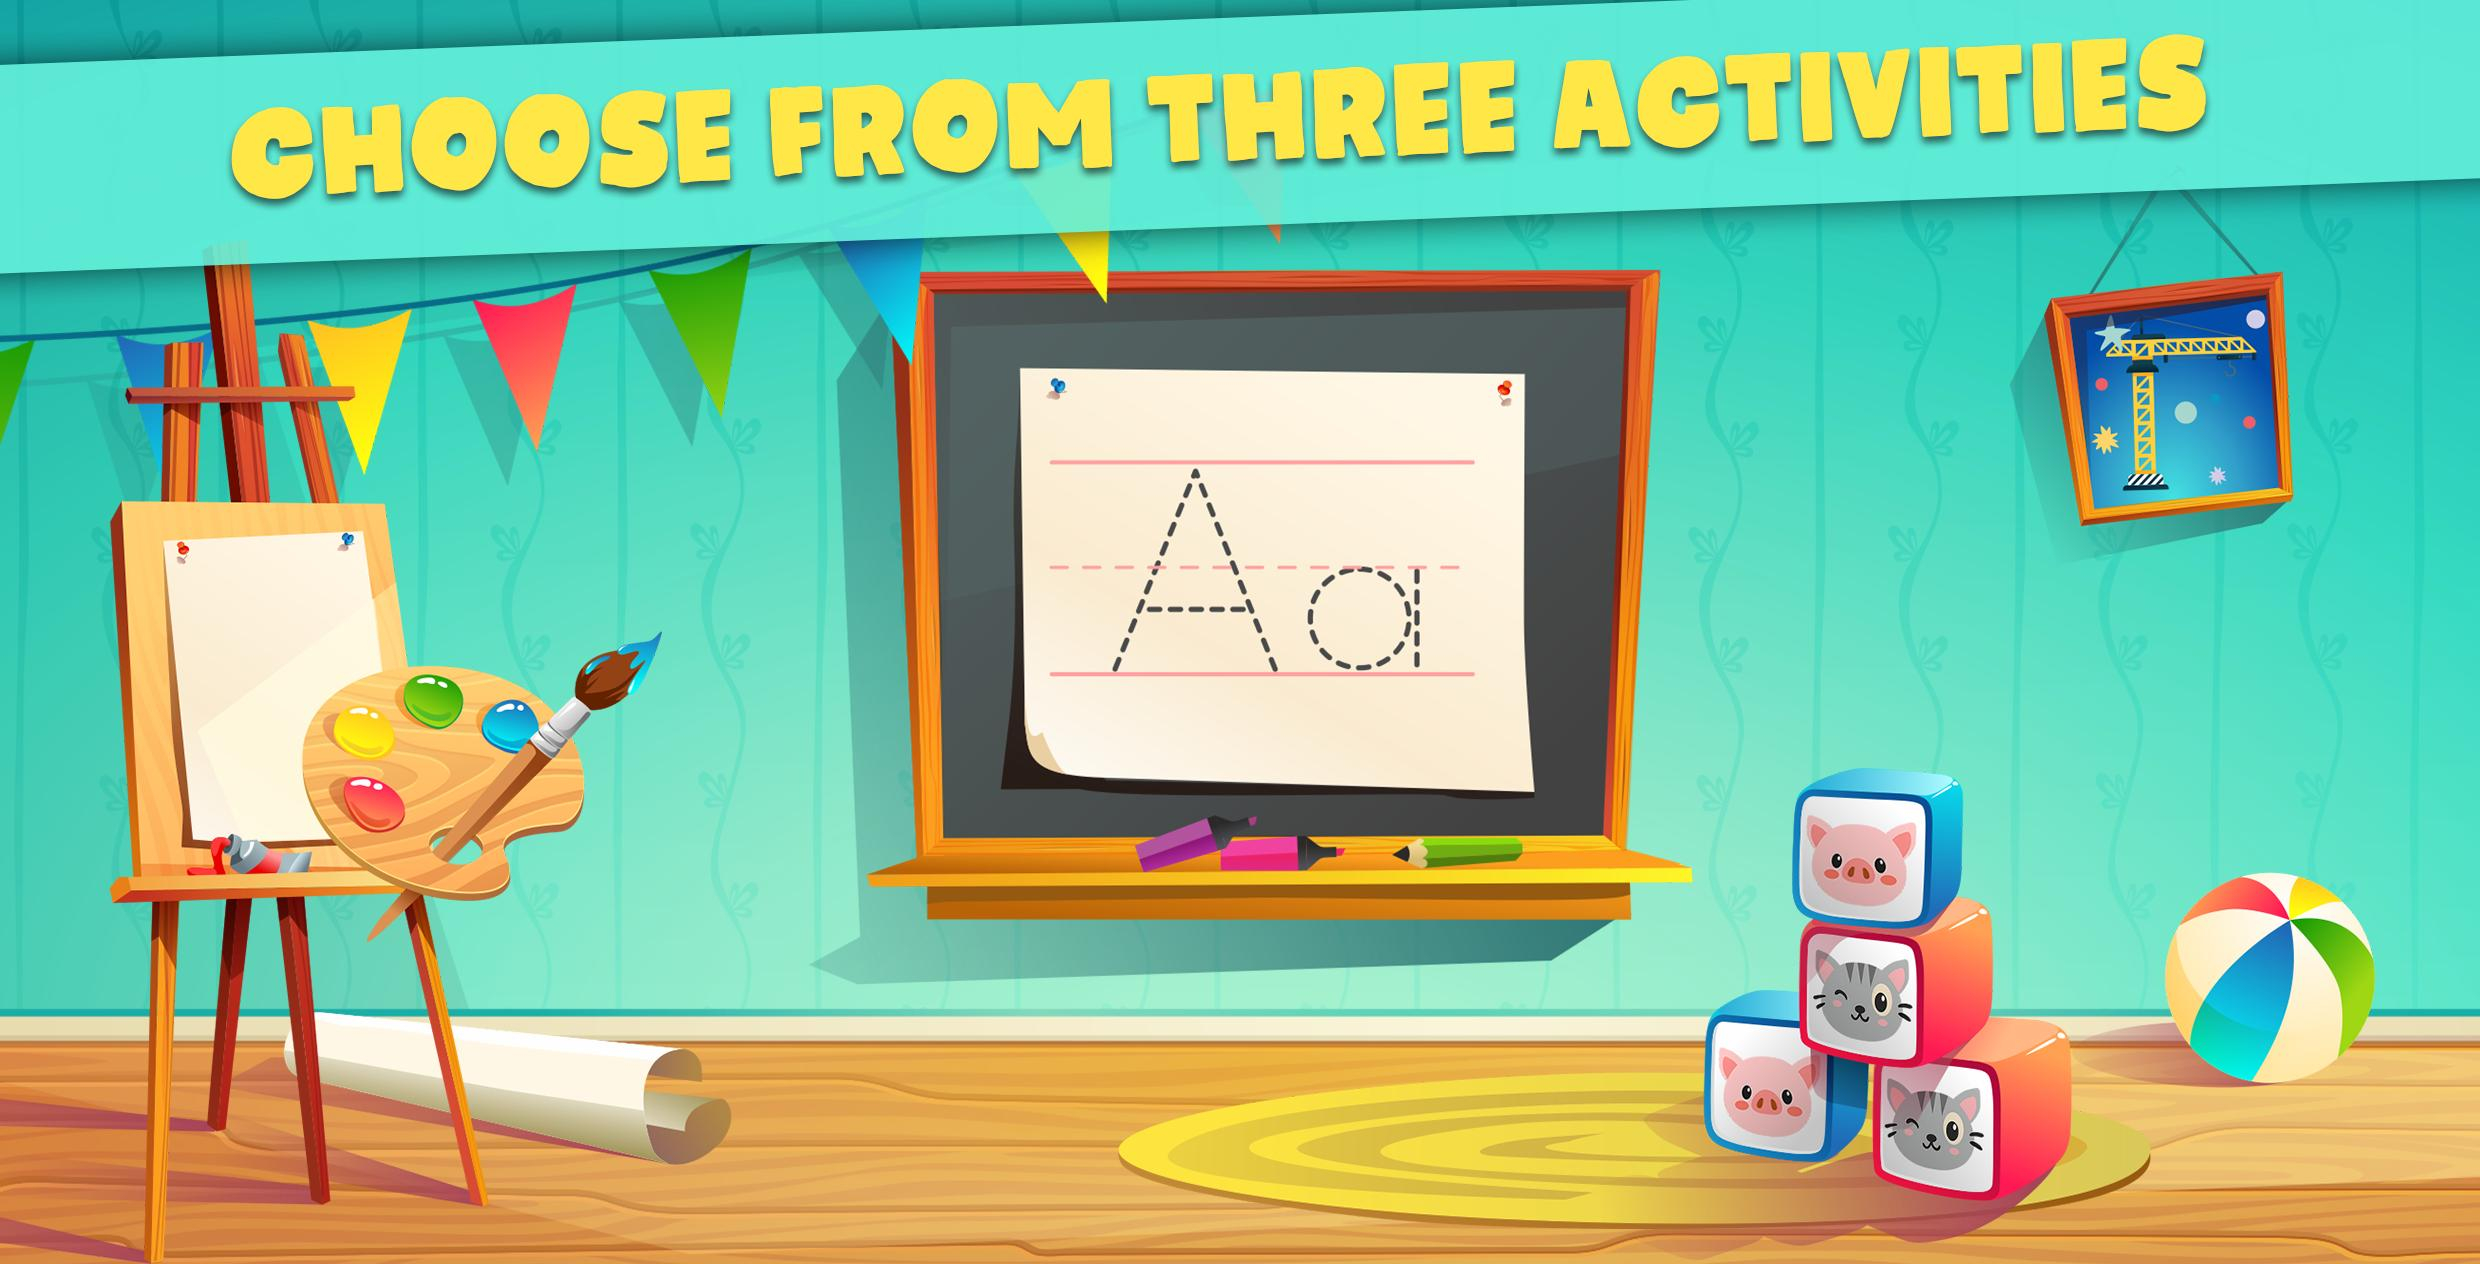 Abc Tracing For Kids Free Games For Android - Apk Download in Abc Tracing Mod Apk